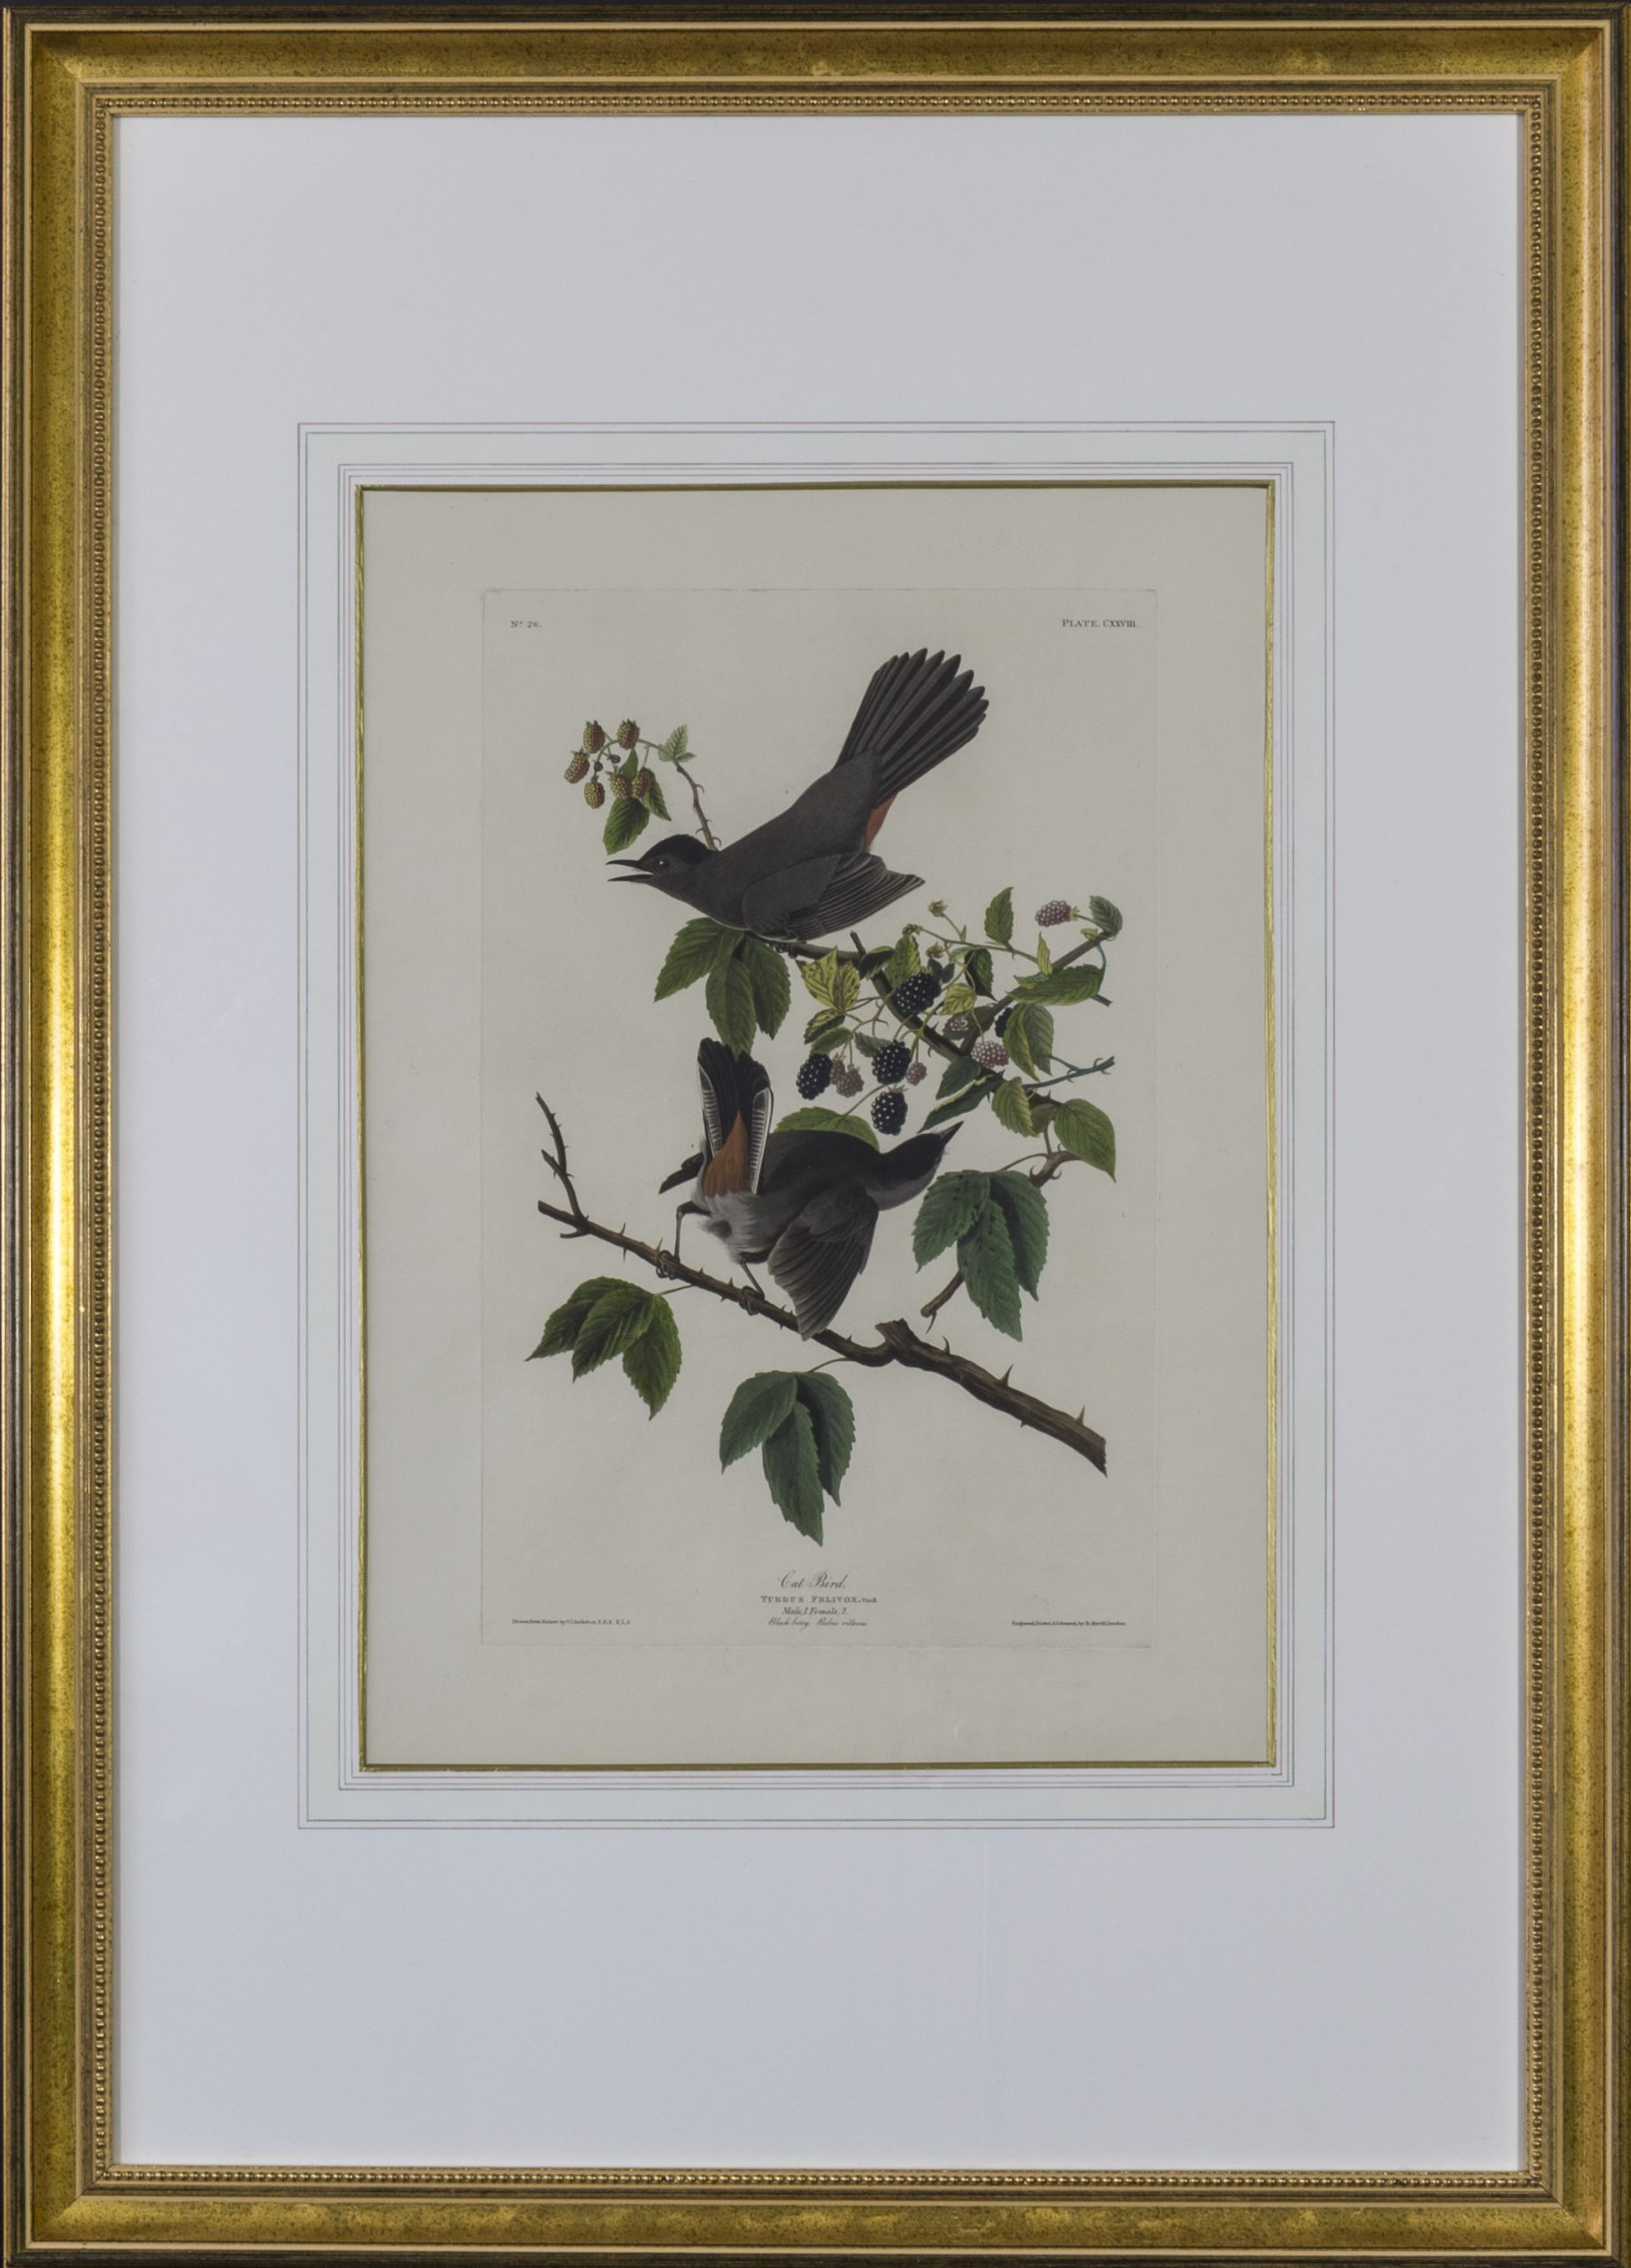 AUDUBON, John James (Print)